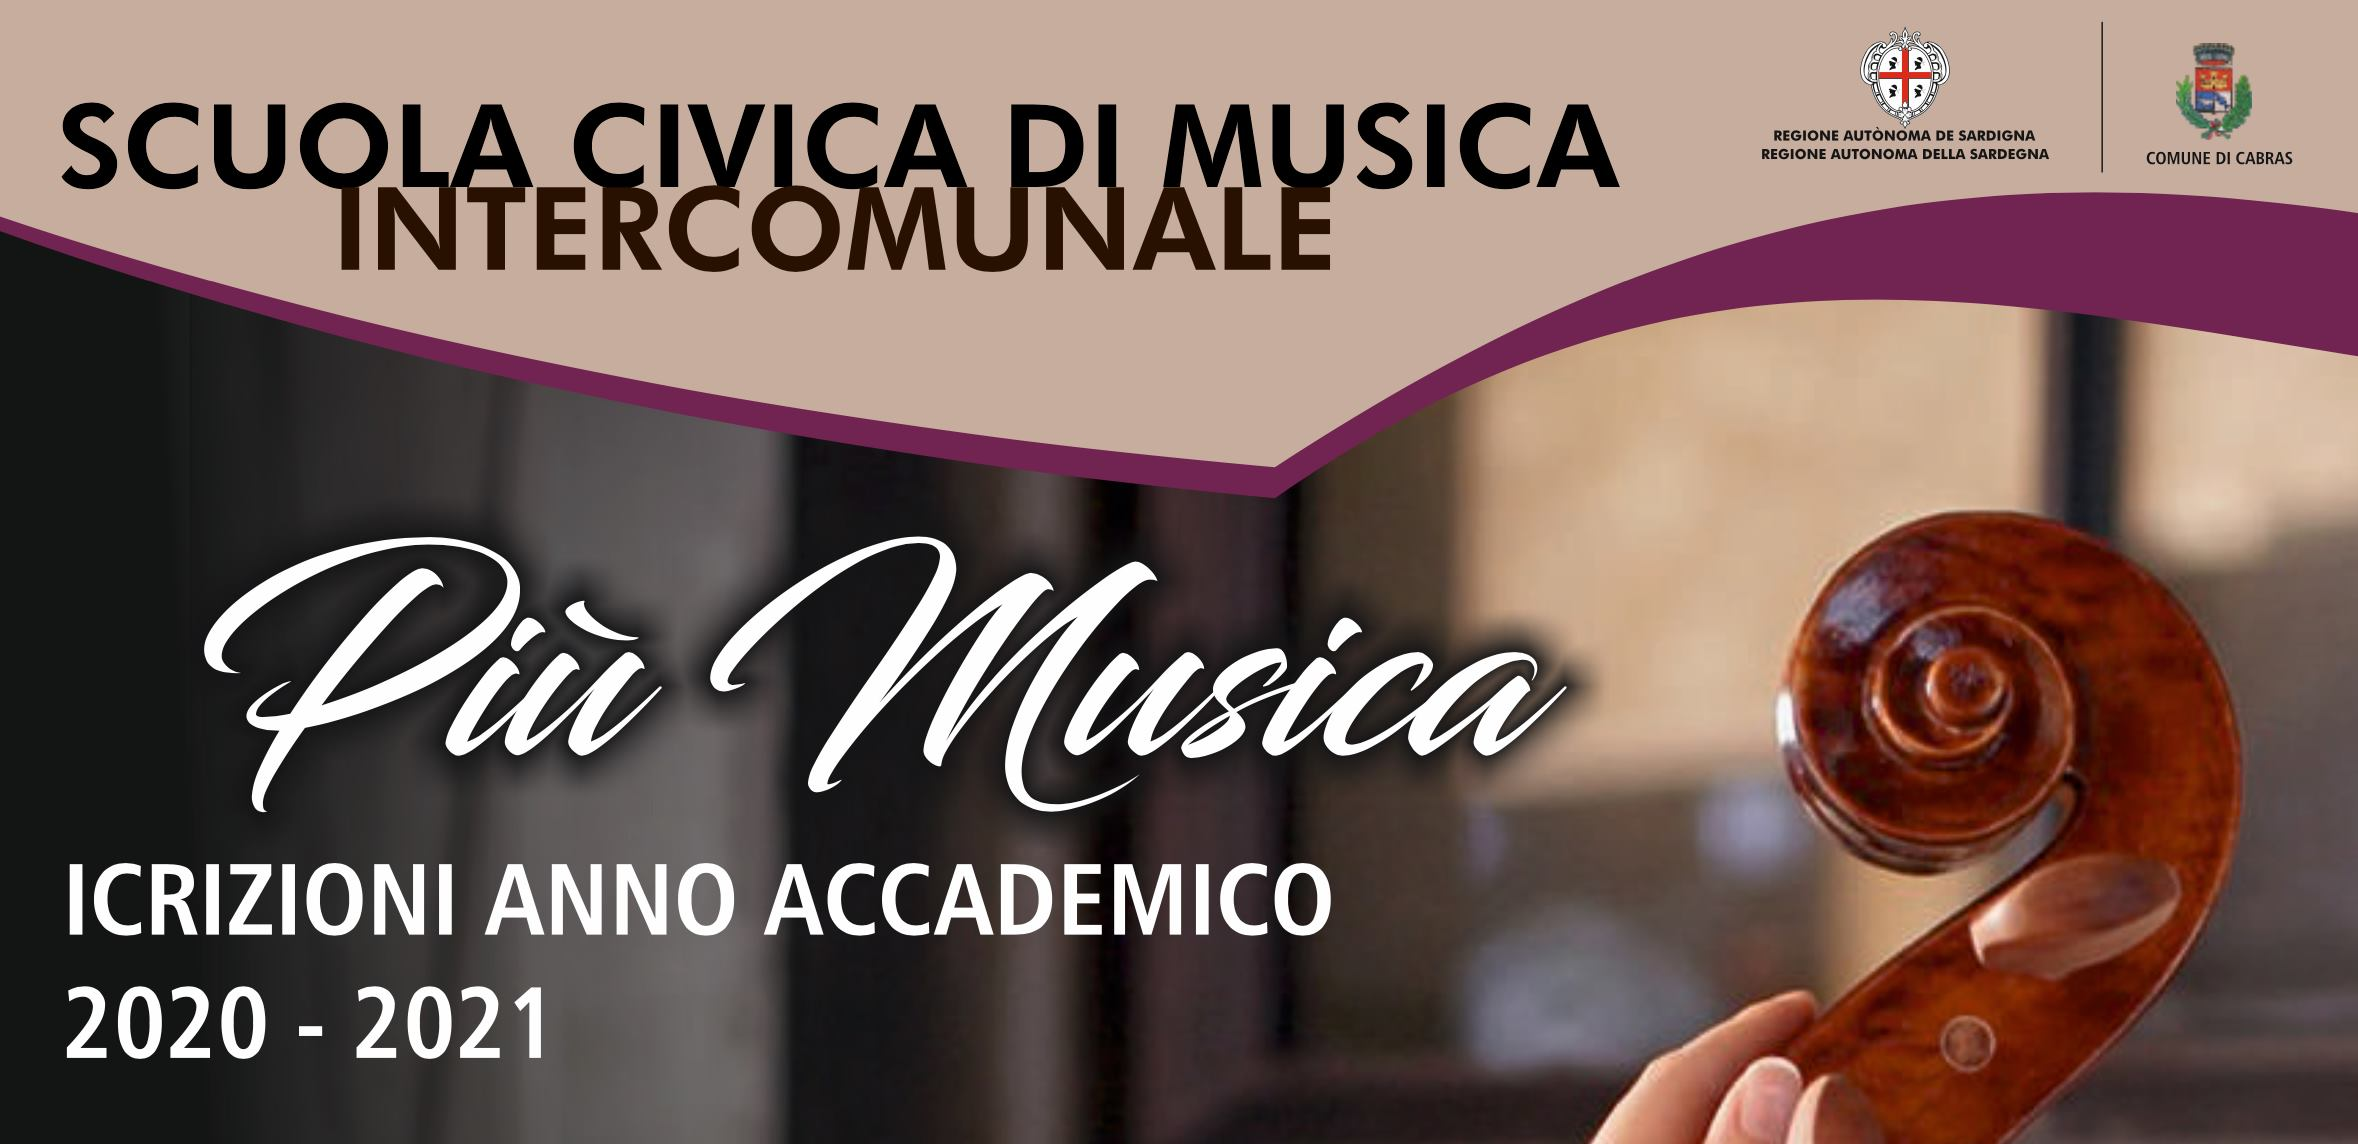 SCUOLA CIVICA DI MUSICA INTERCOMUNALE